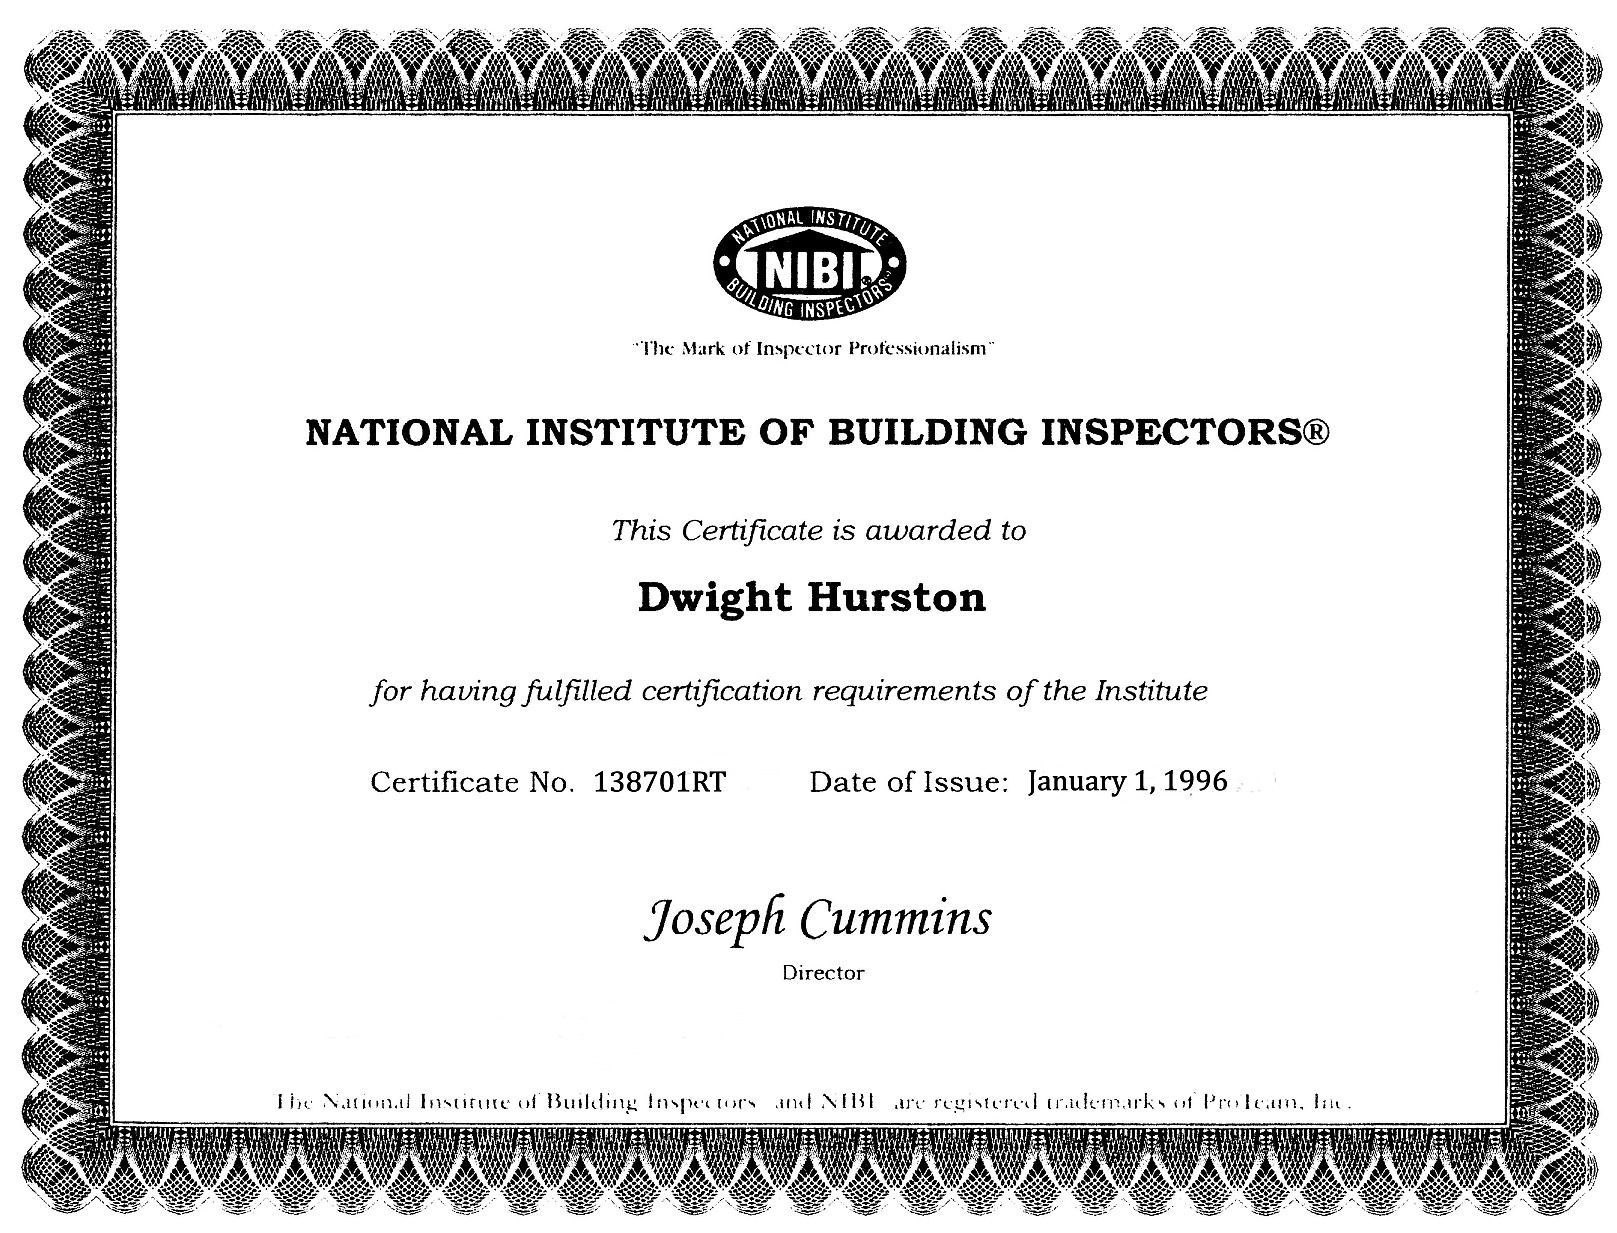 GSI - Great Southeastern Inspections, Inc.